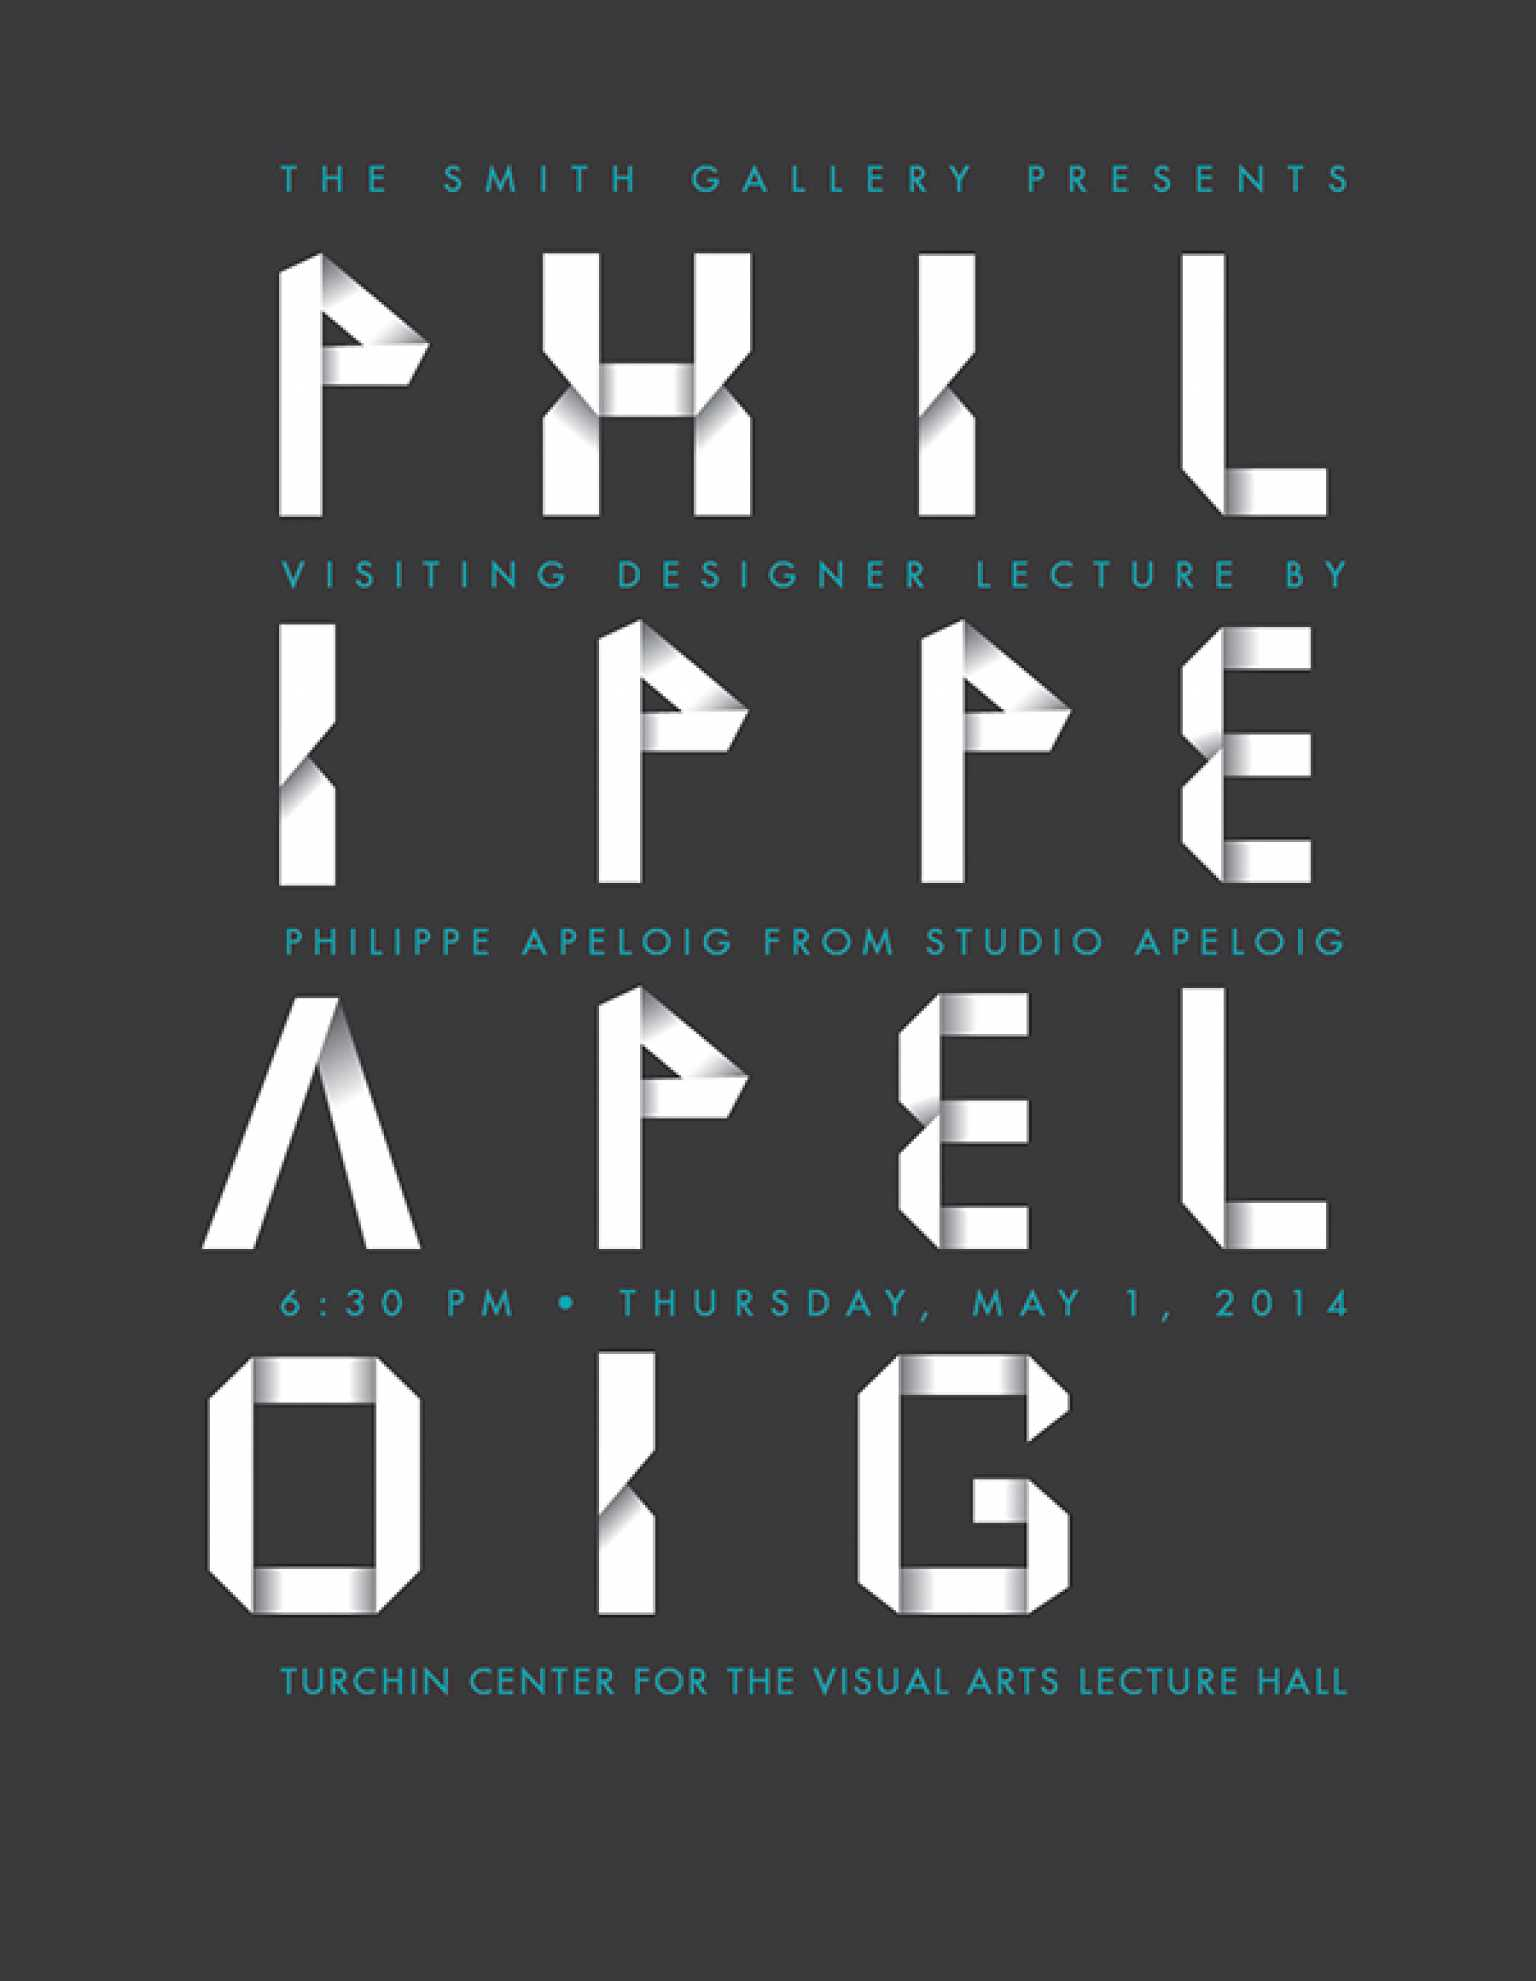 Philippe Apeloig lecture Poster